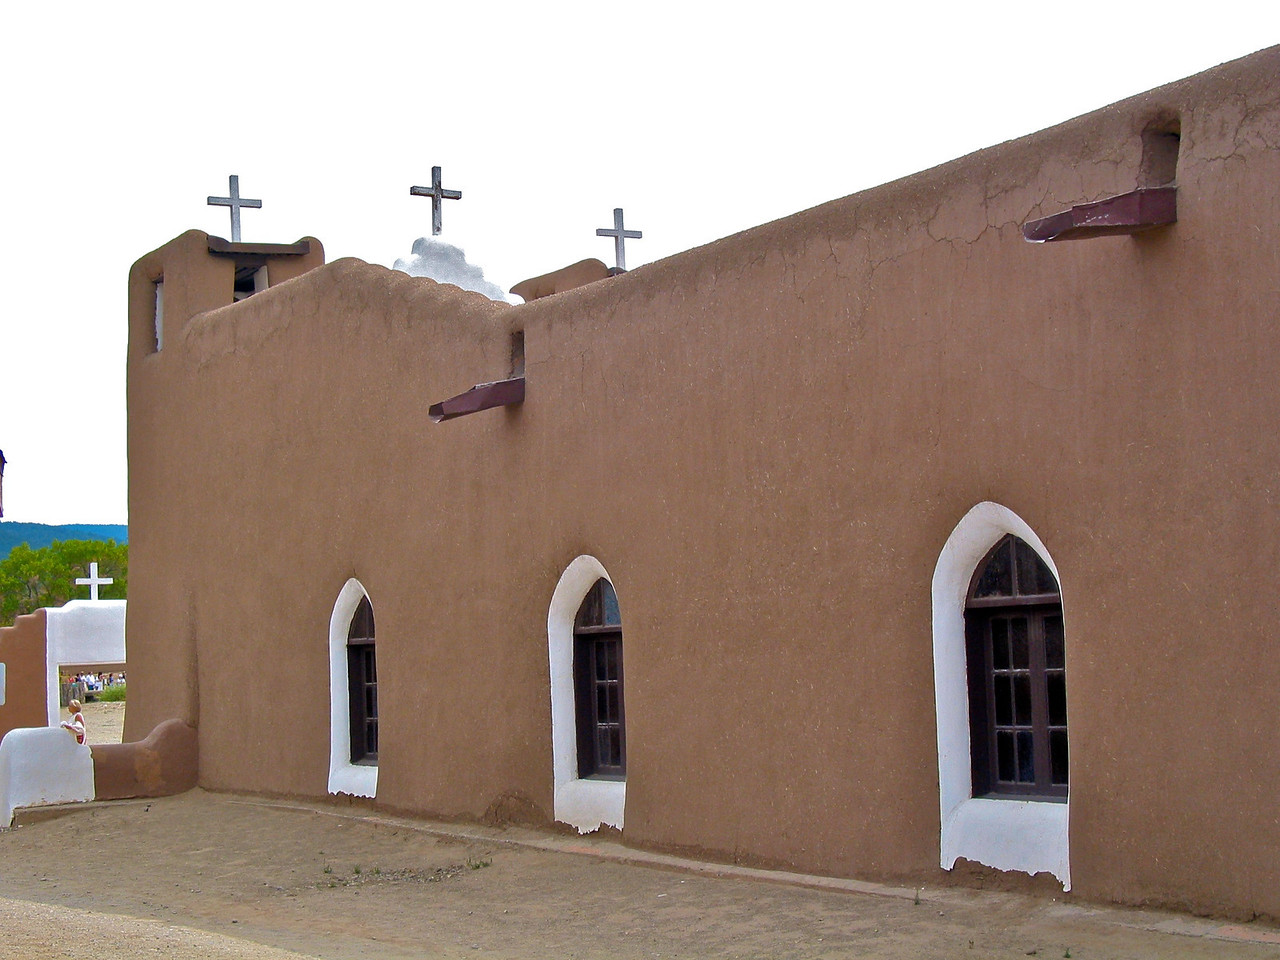 The Pueblo religion is very complex; however, there is no conflict with the Catholic church, as evidenced by the prominent presence of both church and kiva in the village.